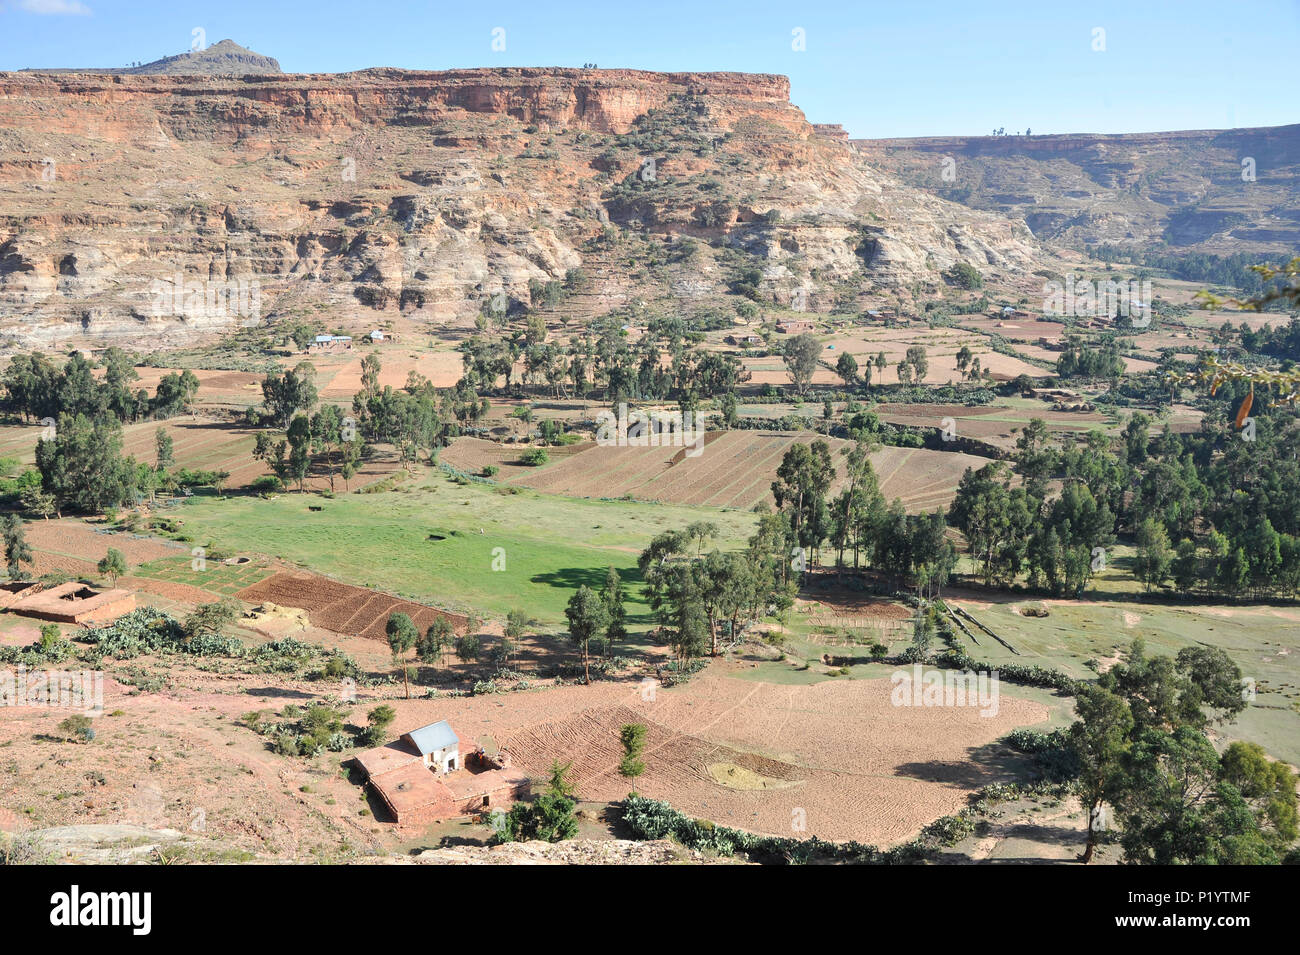 Ethiopia, Tigray area, spectacular scenery of arid mountains and cultivated plateaus - Stock Image